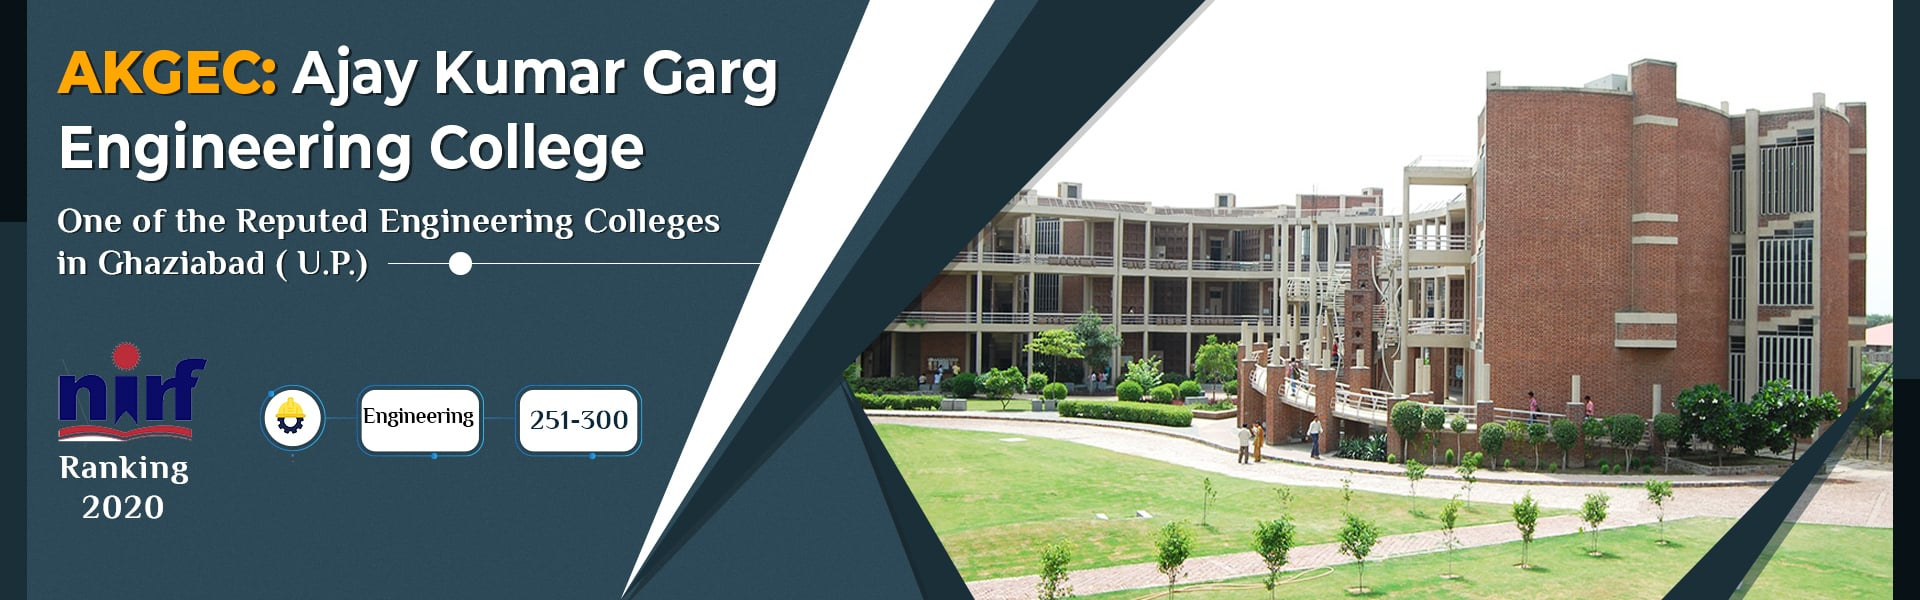 Ajay Kumar Garg Engineering College (AKGEC)